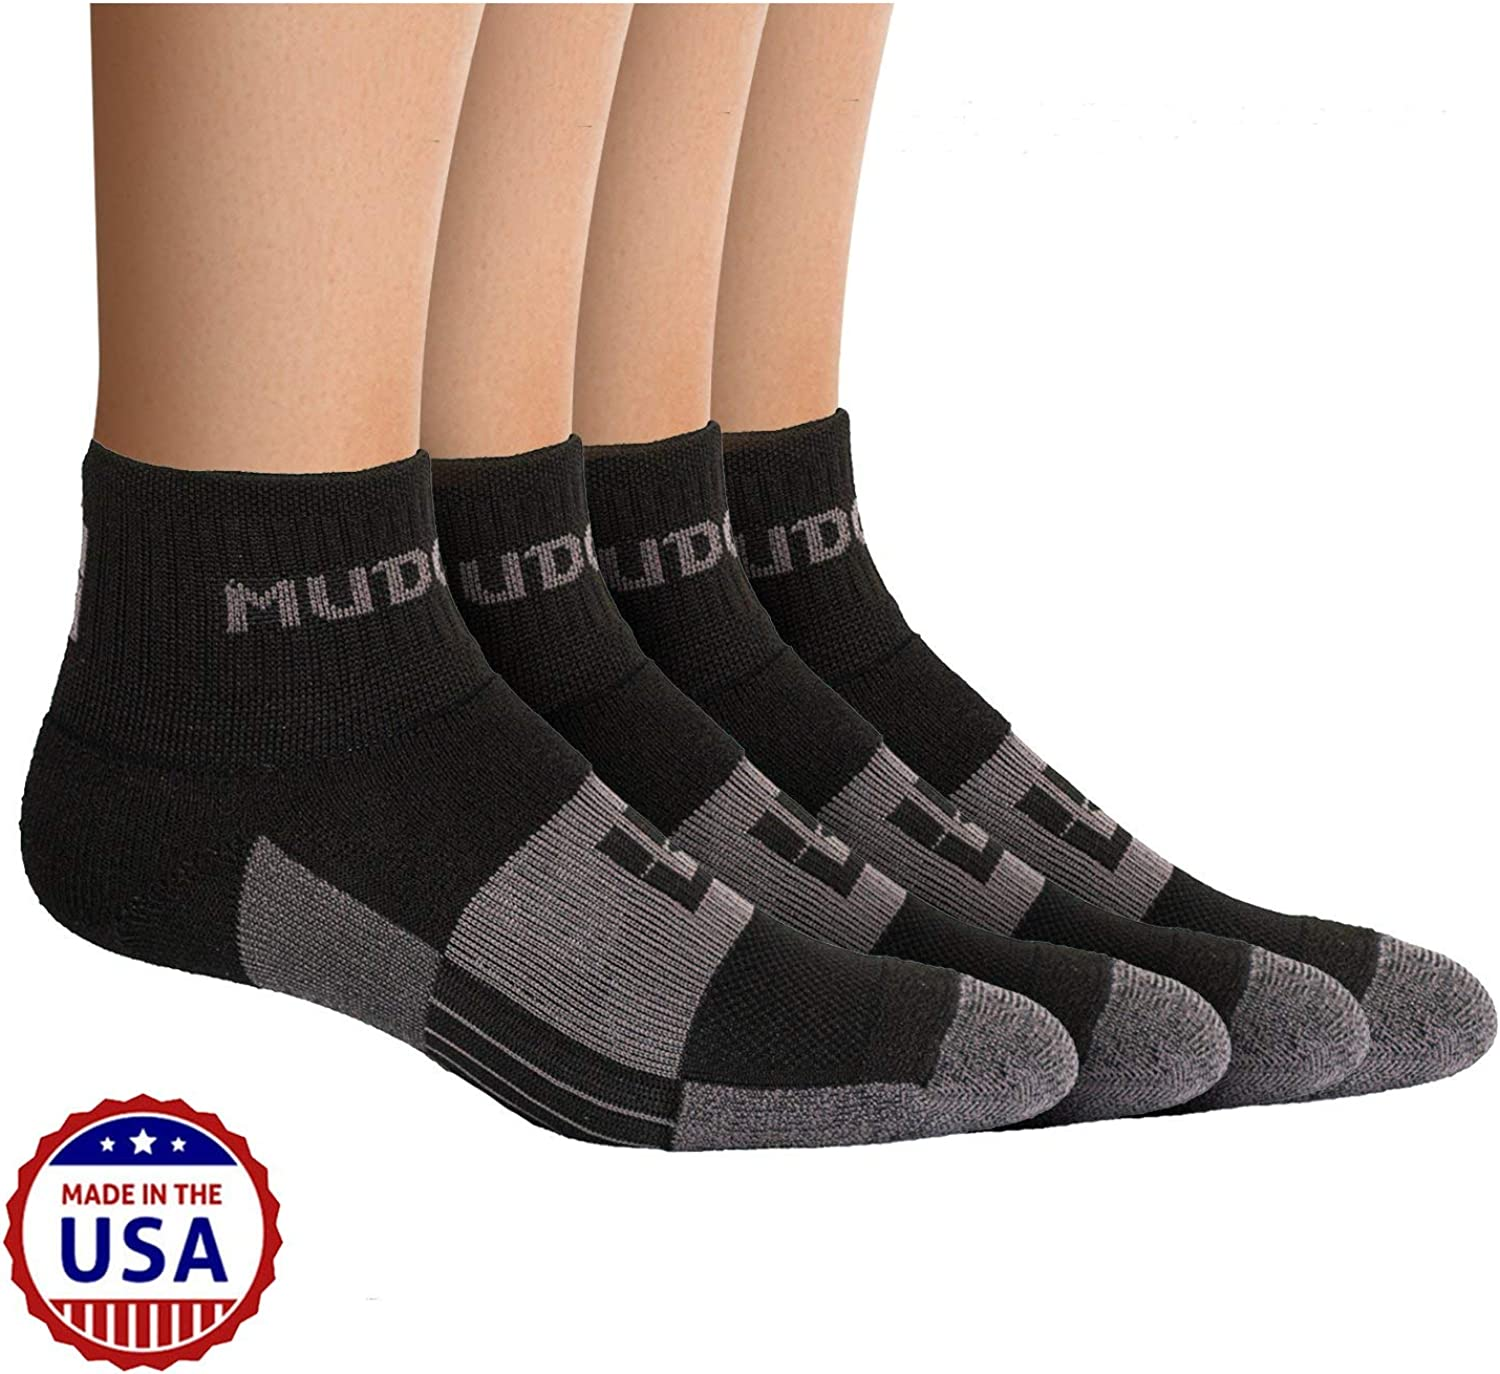 2 Pair Pack Made in USA MudGear Trail Running Socks for Men and Women